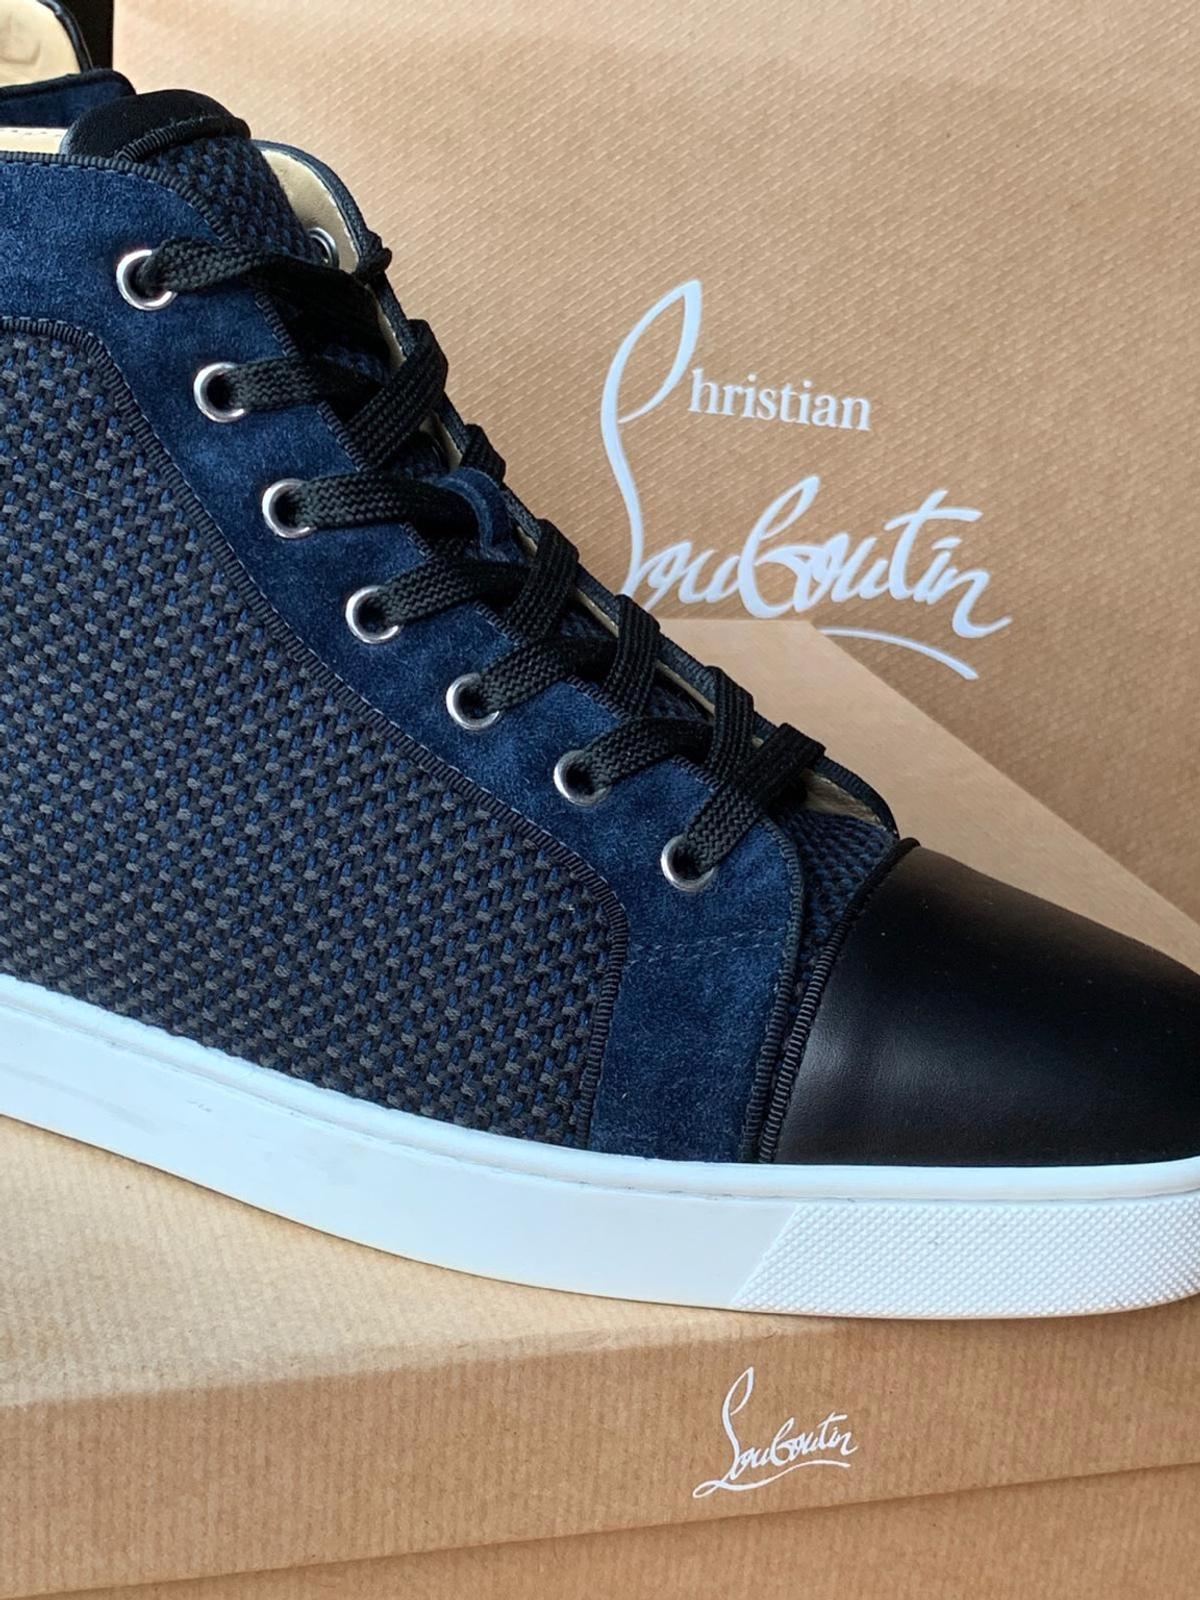 outlet store 08a19 42021 Men's christian louboutin trainers in L2 Liverpool for ...